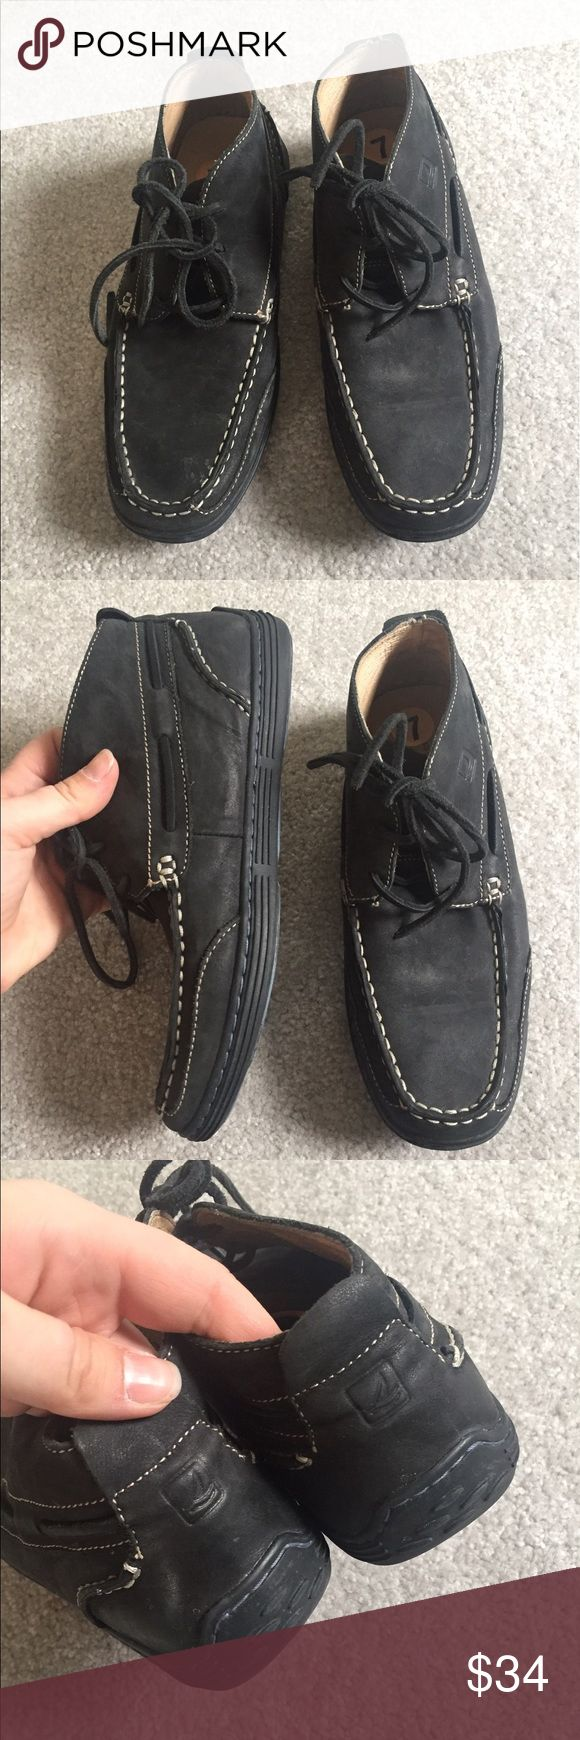 Sperry Topsider Men's Chukka Boat Boots size 7 Black leather Lace Up men's Booties from Sperry Topsider in a size 7. They are in very good condition with light wear. #menswear #shoefie #leather #black Sperry Shoes Chukka Boots